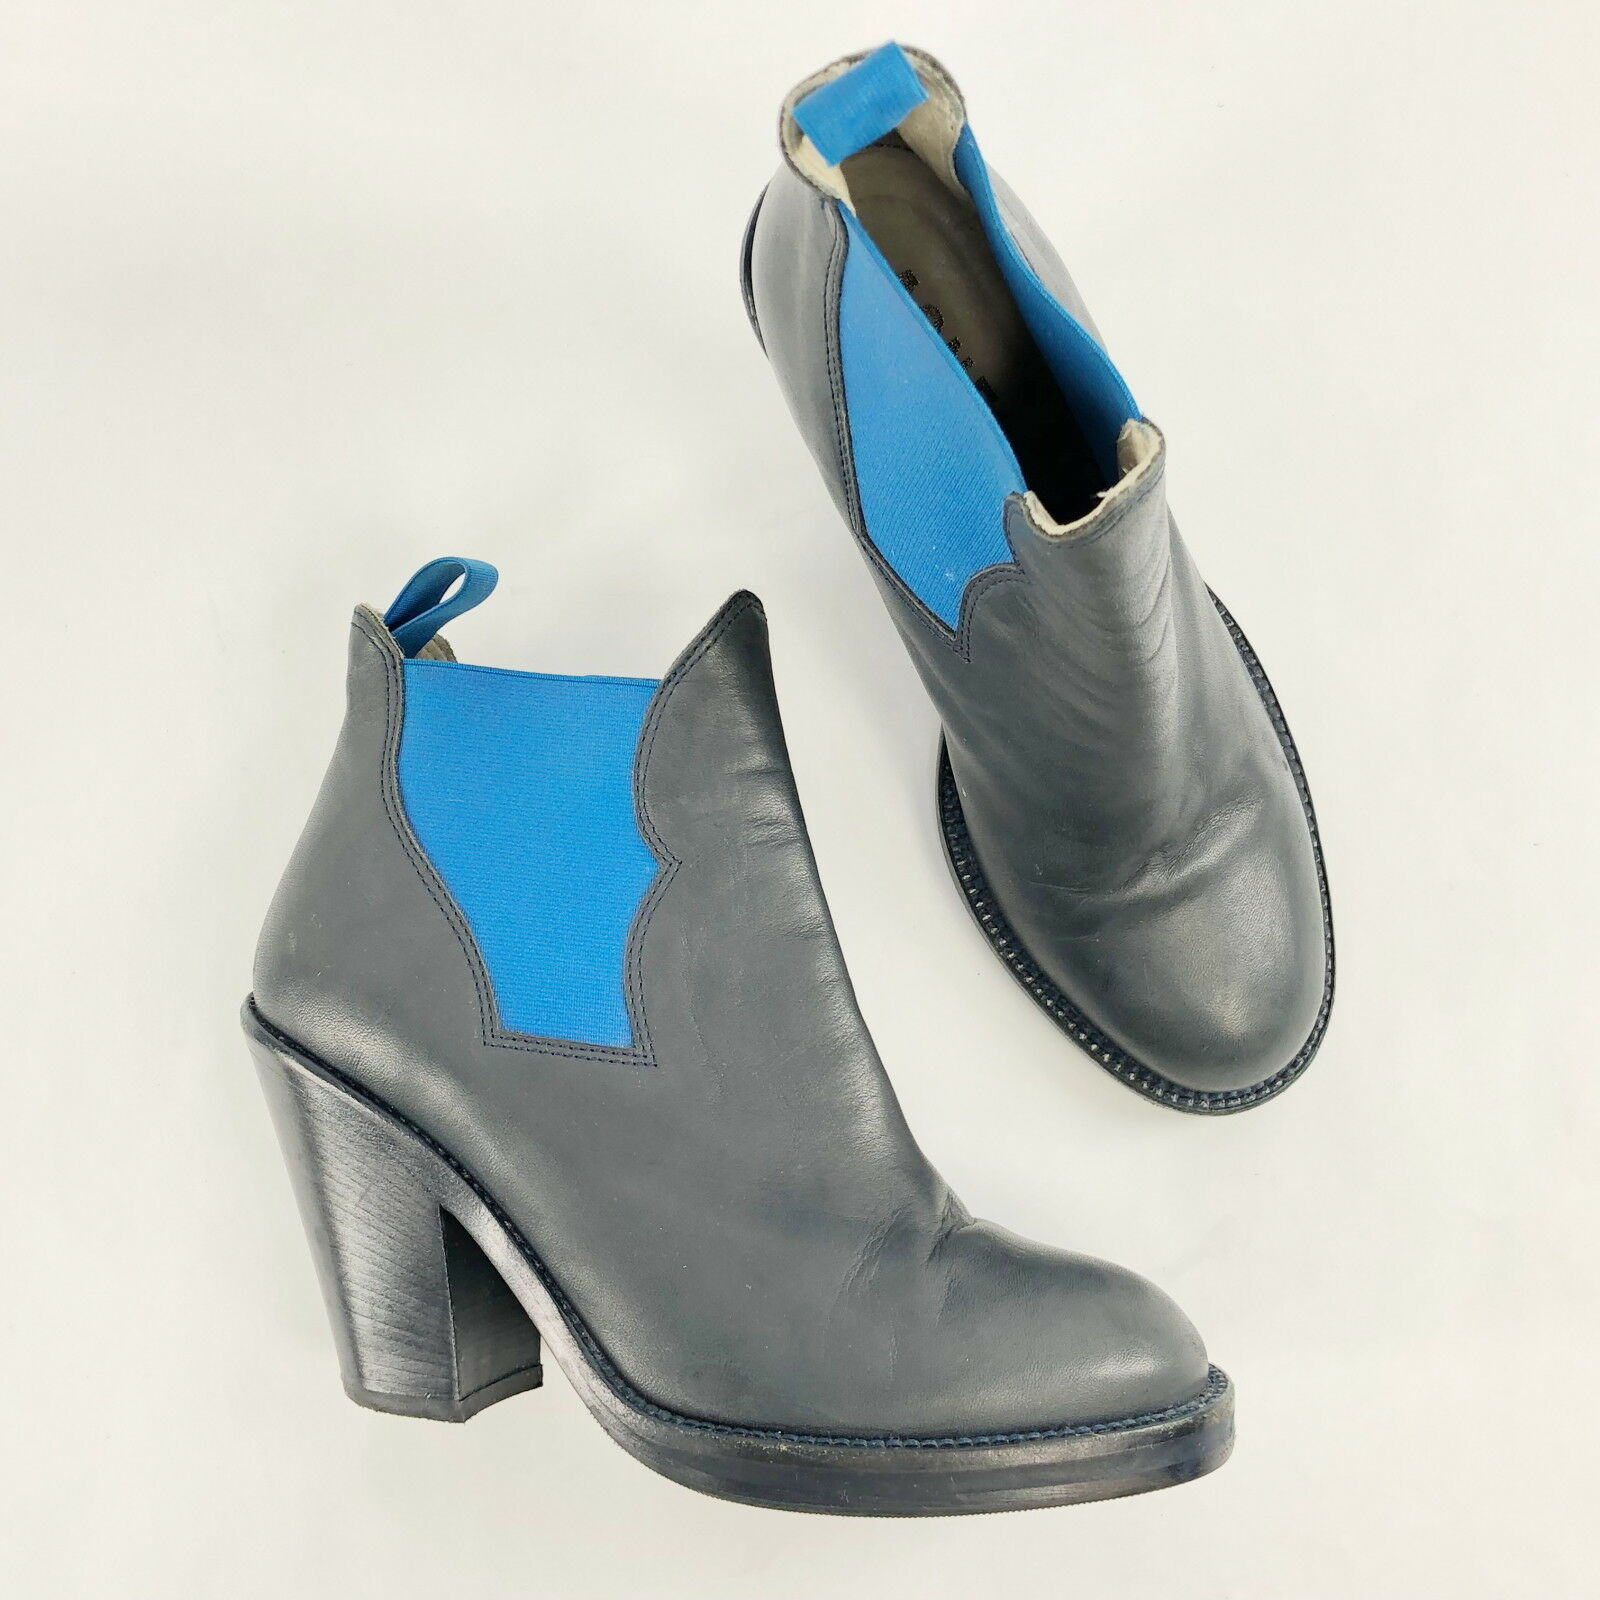 acquista marca Acne Studios Donna  stivali Star blu Leather Chunky Chunky Chunky Heel Ankle Pull On avvioie 36  punto vendita